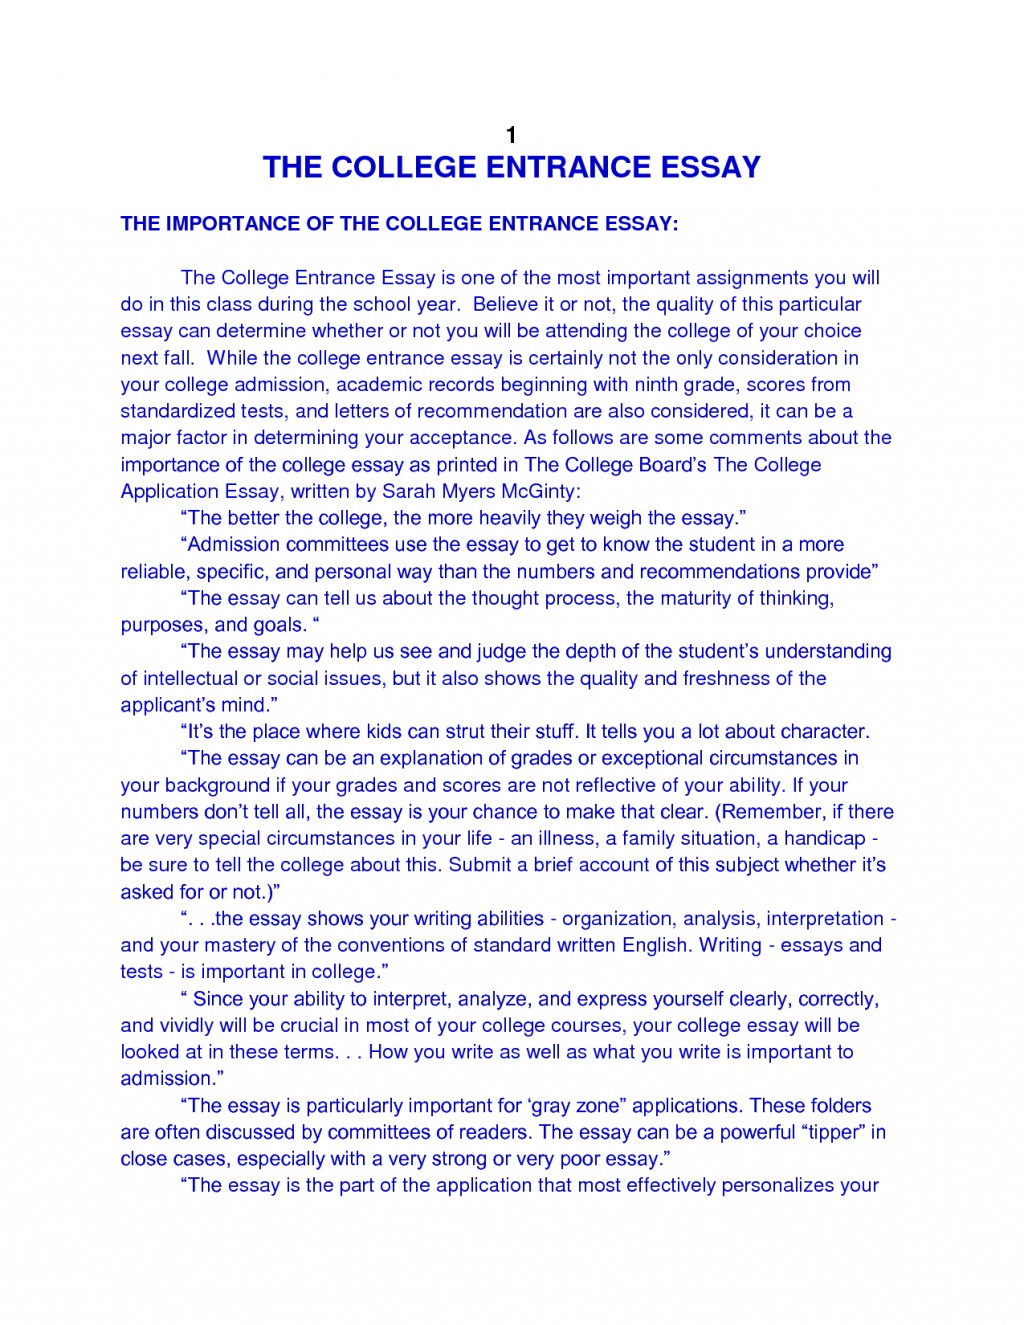 002 Nmij5vyvqc Write My College Essay Marvelous Can I A Story For What To On Quiz Large